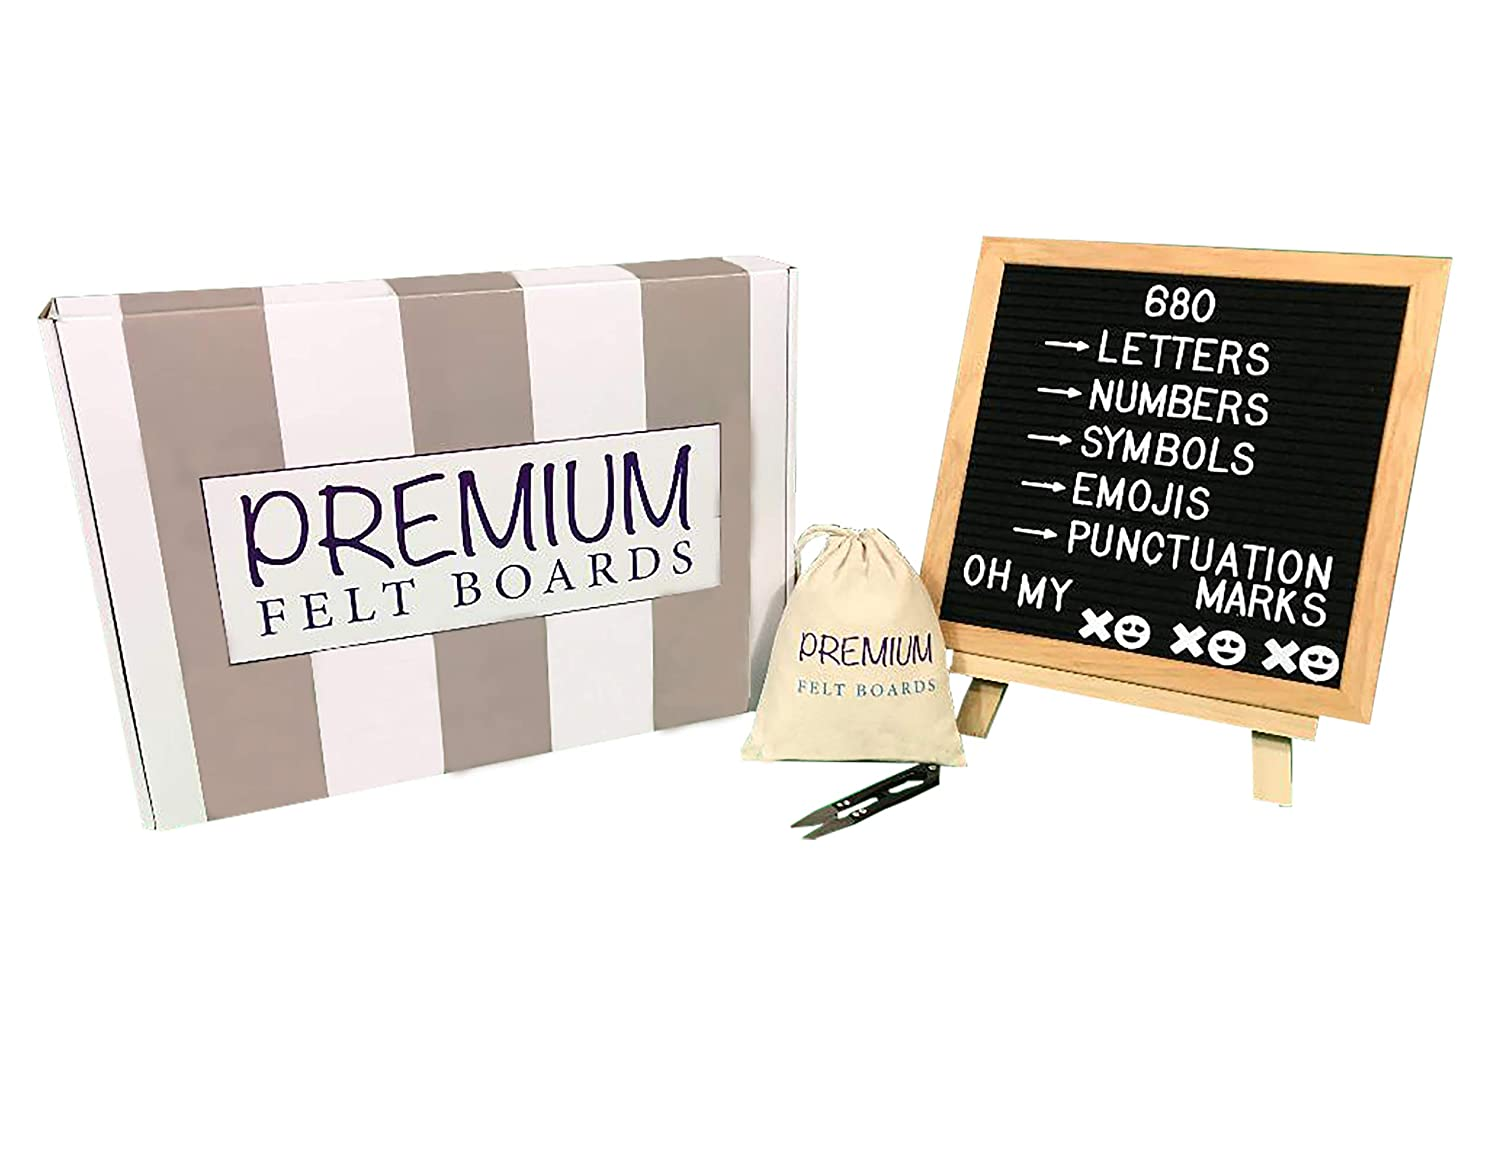 Black Felt Letter Board 10x10 inches with Stand - 680 White Plastic Changeable Letters and Characters - Premium Quality Premium Felt Boards